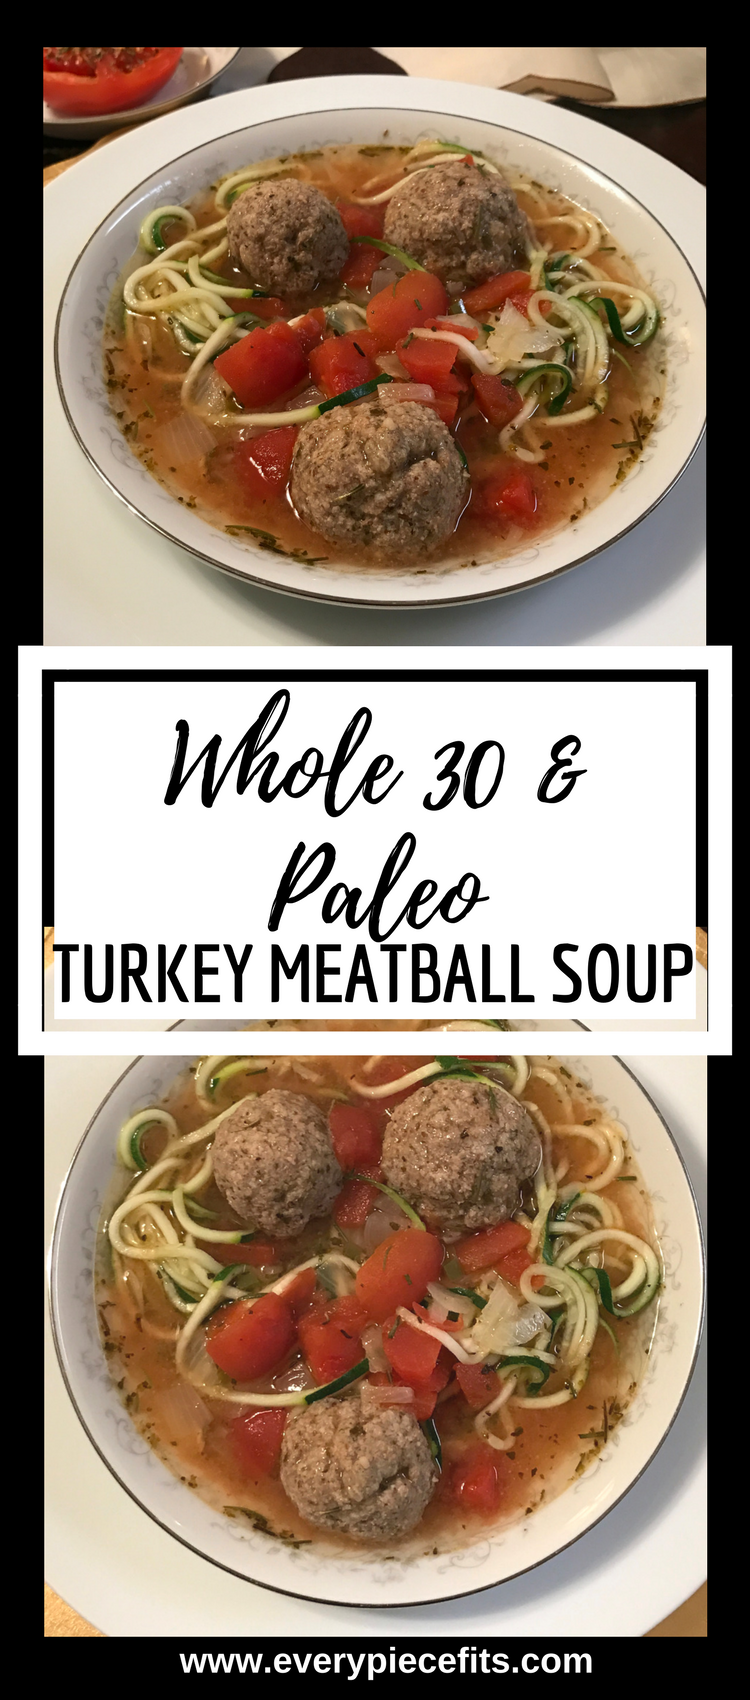 Whole 30 Turkey Meatball Soup.png